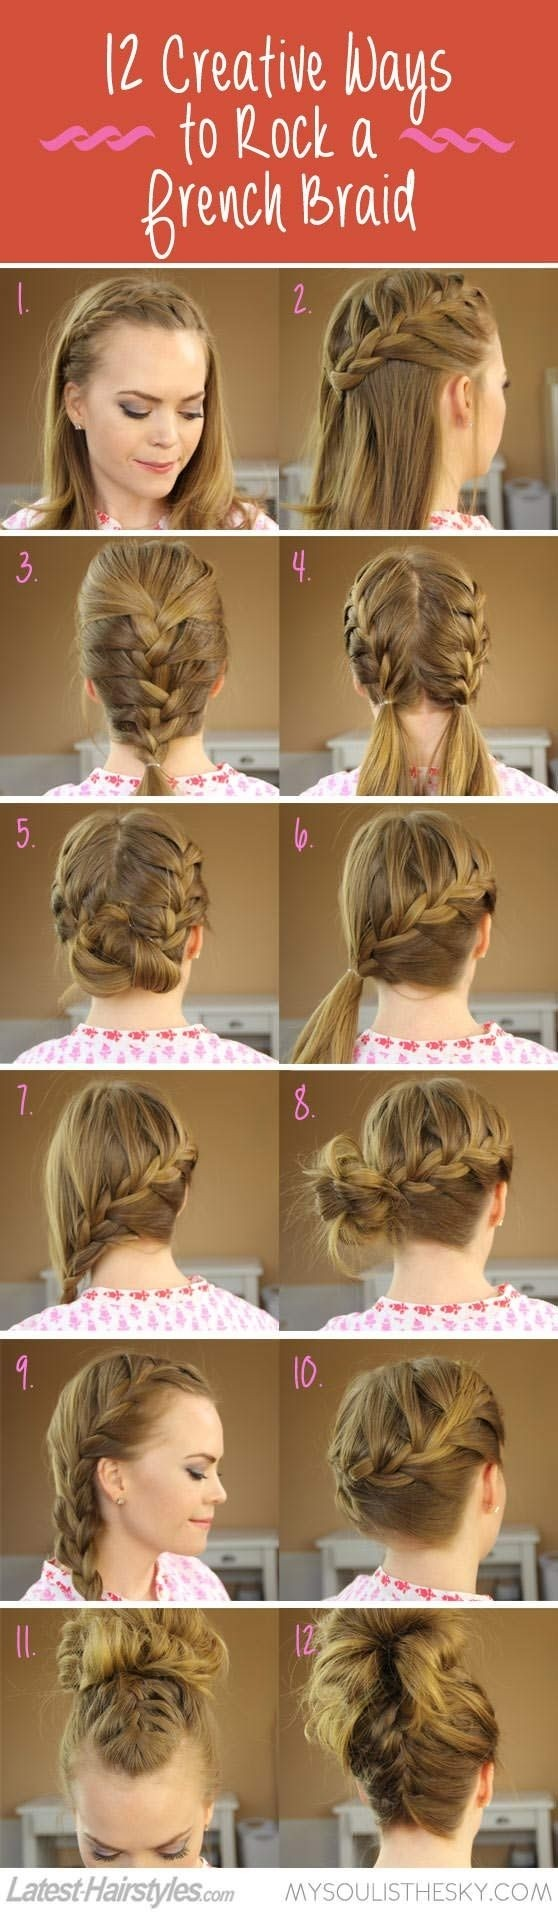 Creative French ideas for braided hairstyles